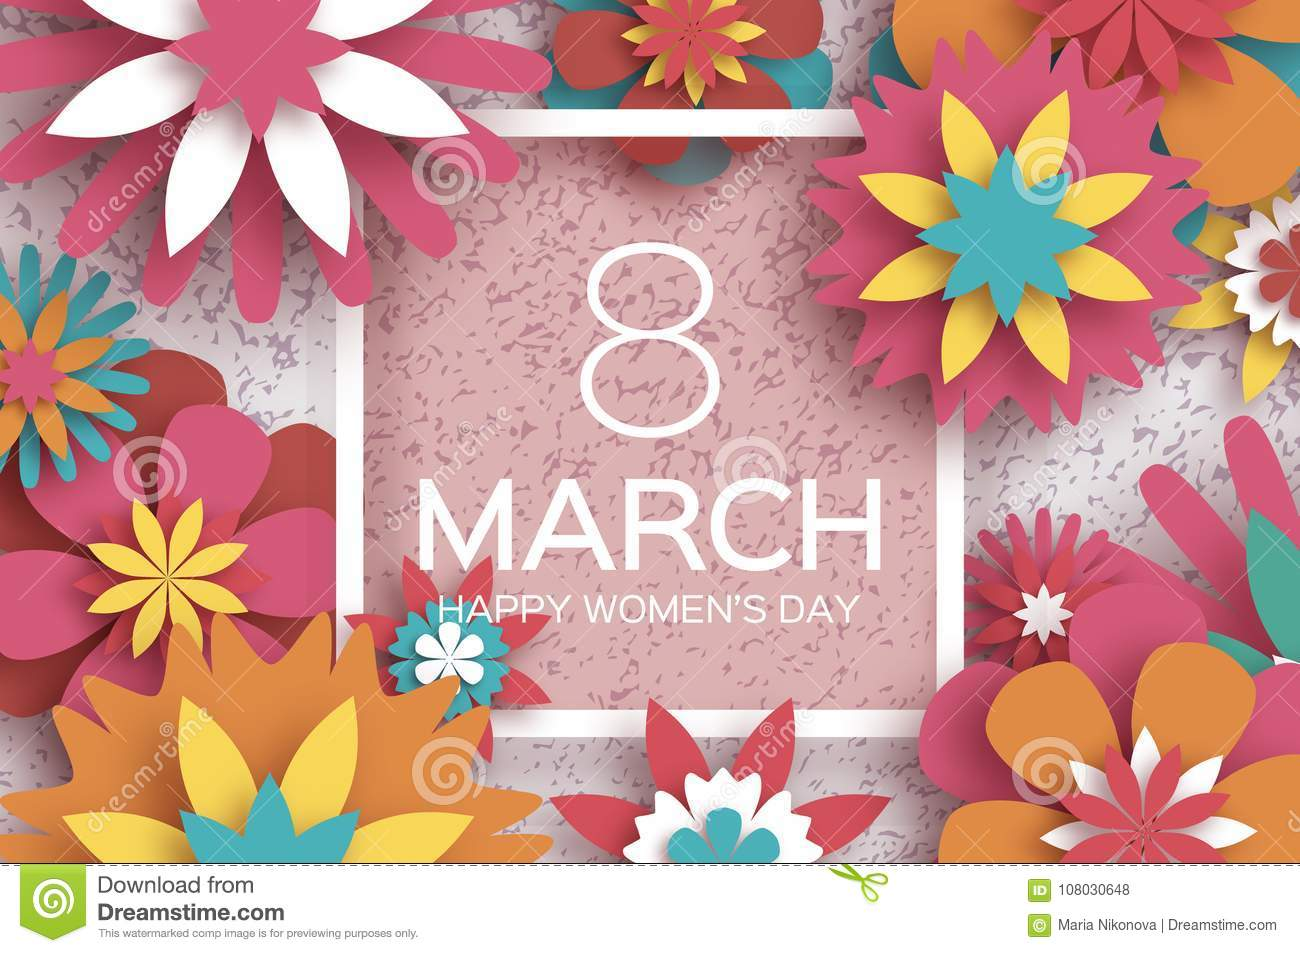 8 march happy women s day red paper cut floral greeting card 8 march happy women s day red paper cut floral greeting card origami flowersquare frame space for text happy mother s day text spring blossom mightylinksfo